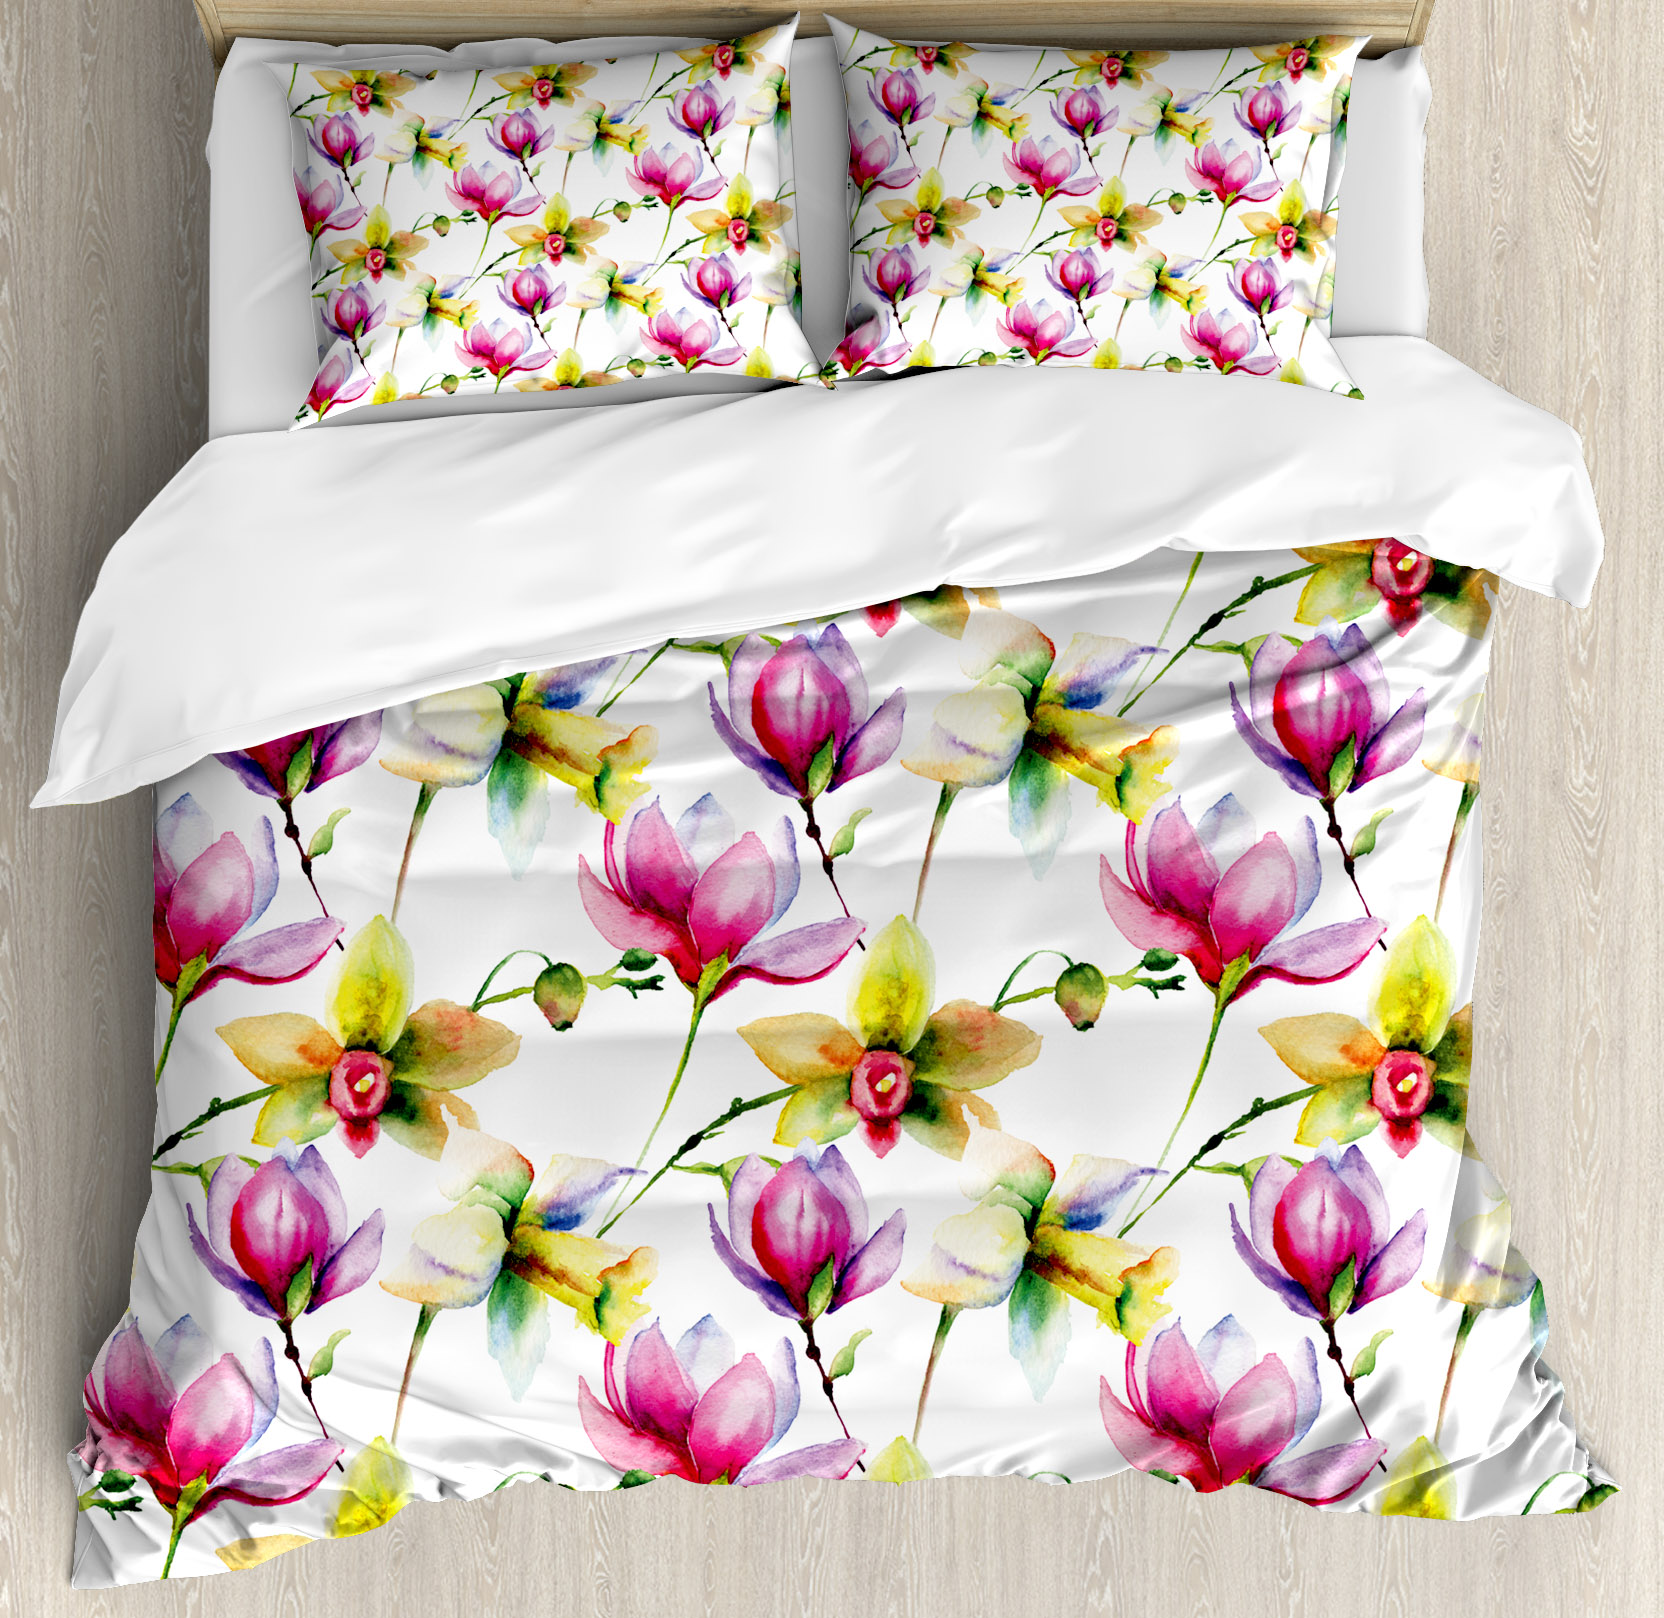 Floral Queen Size Duvet Cover Set, Blurry Hazy Toned Vibr...